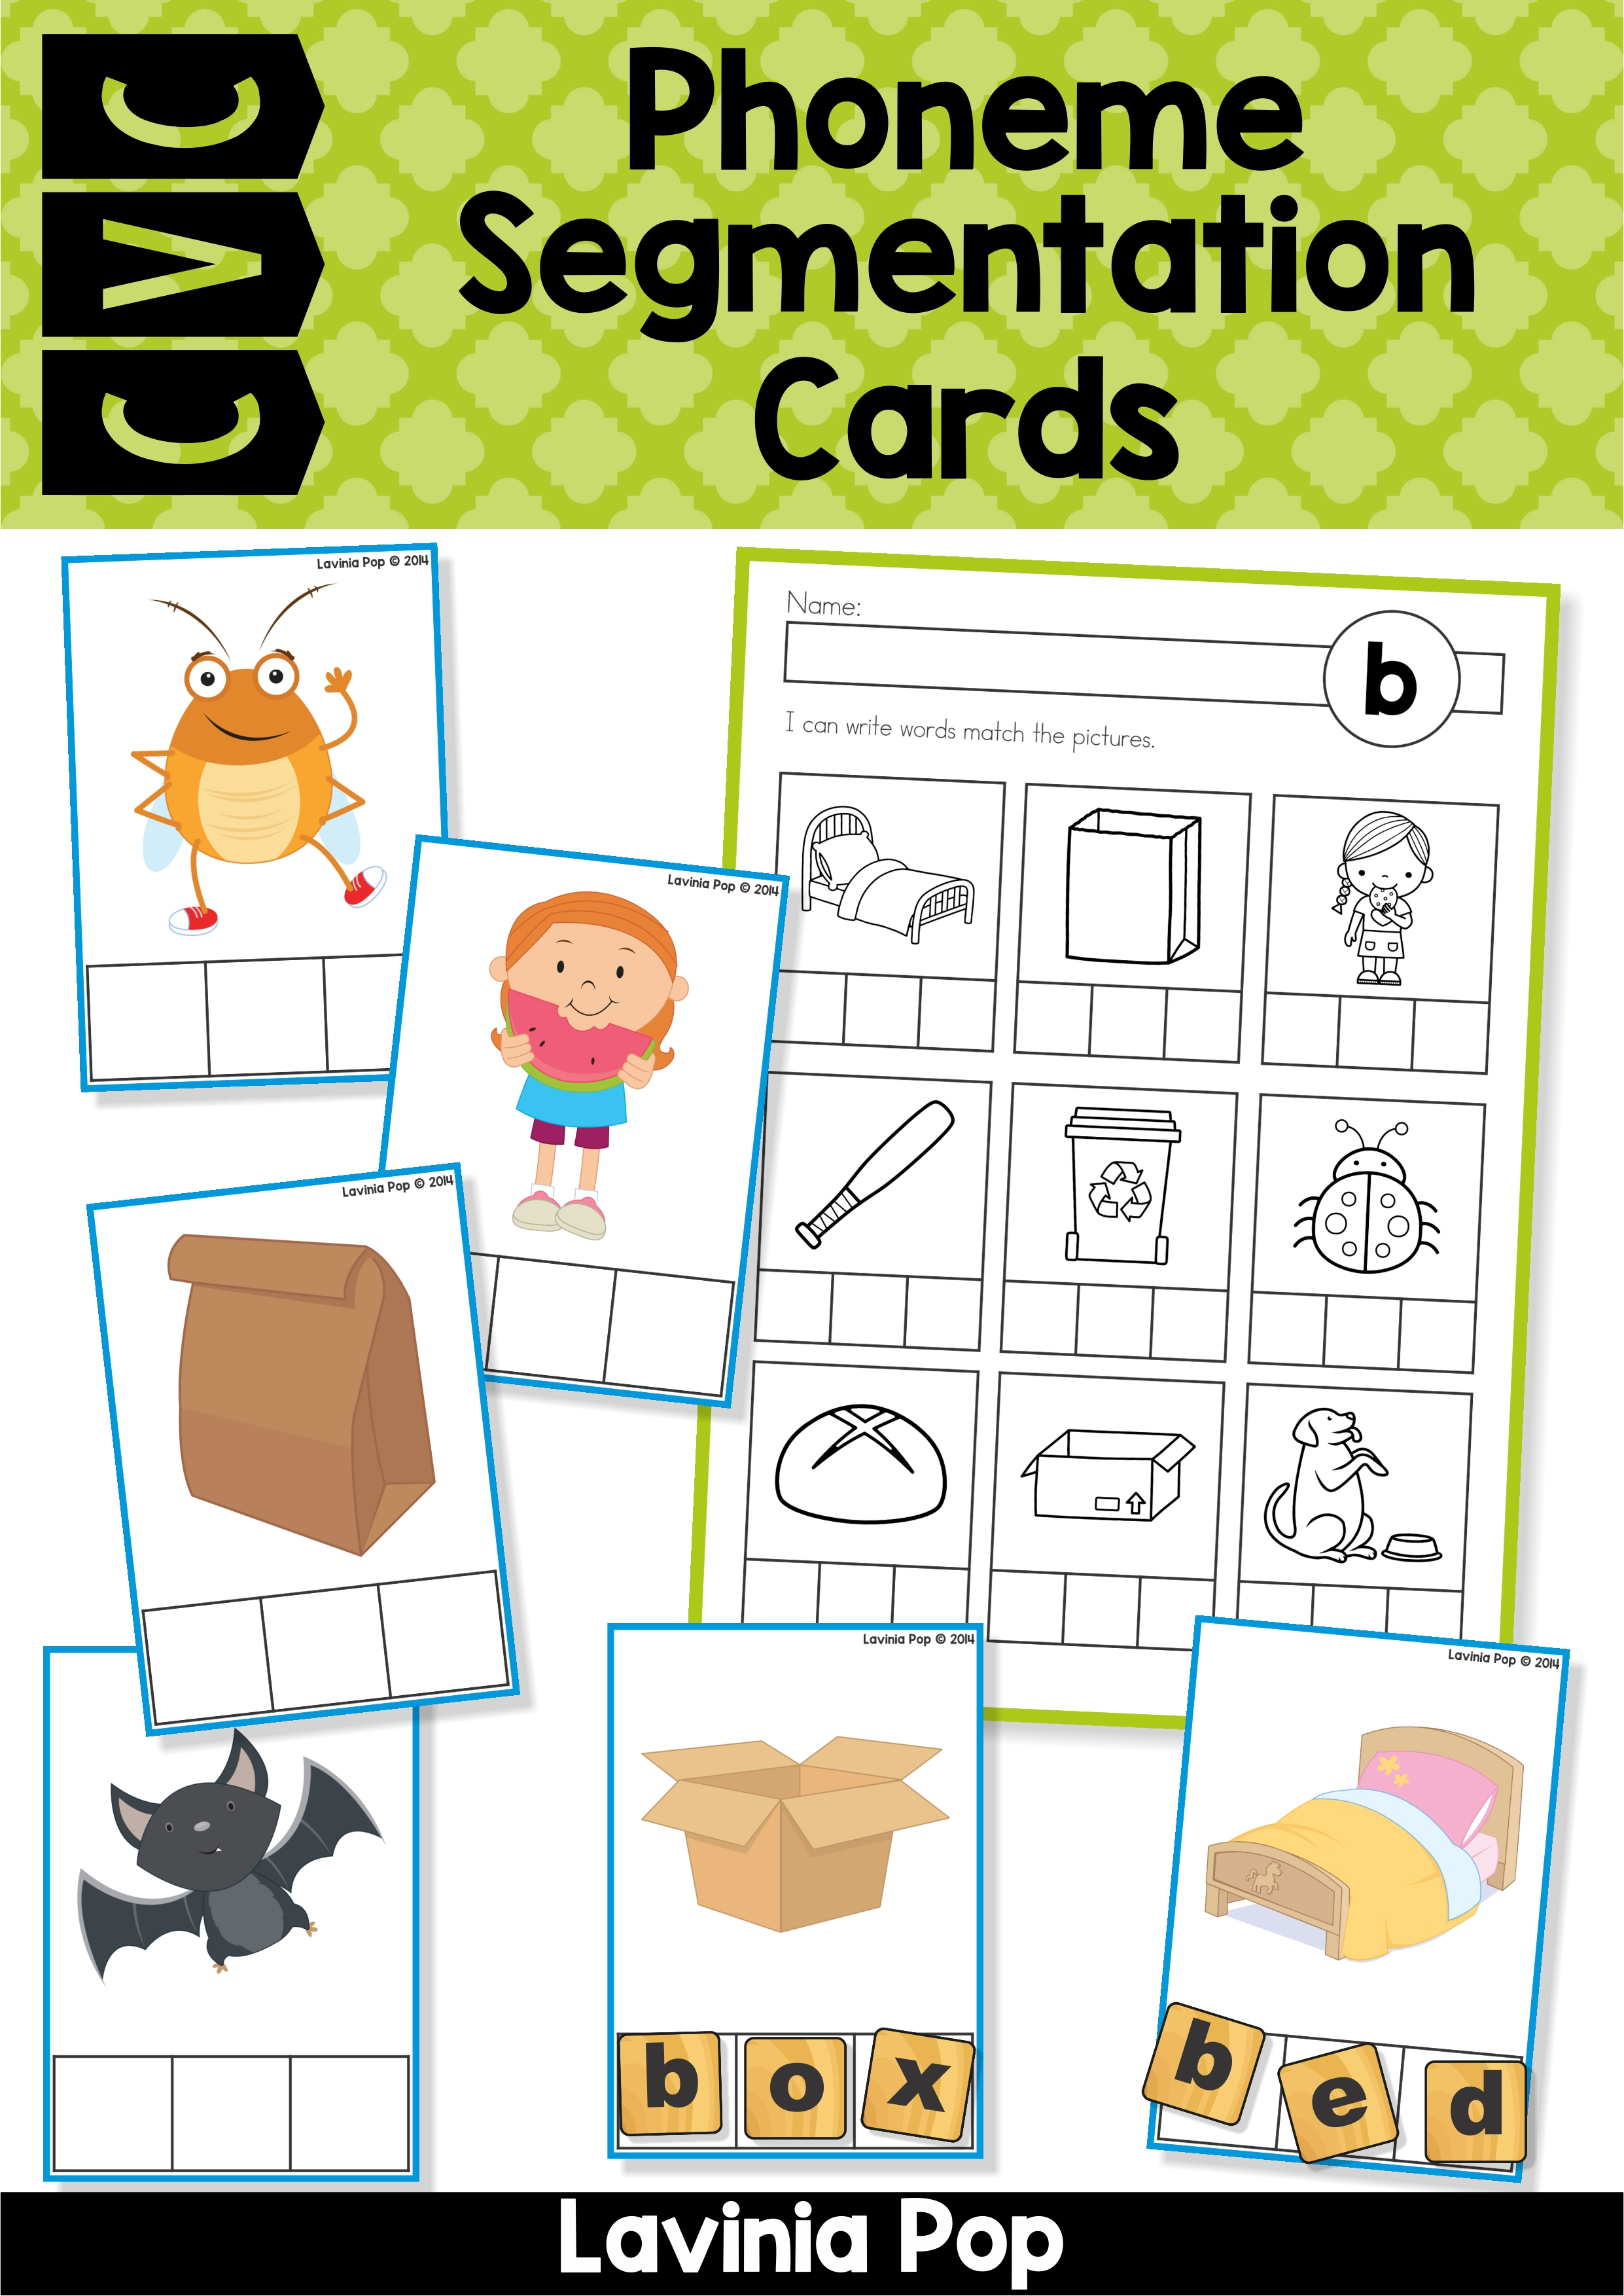 Phoneme Segmentation Cards1